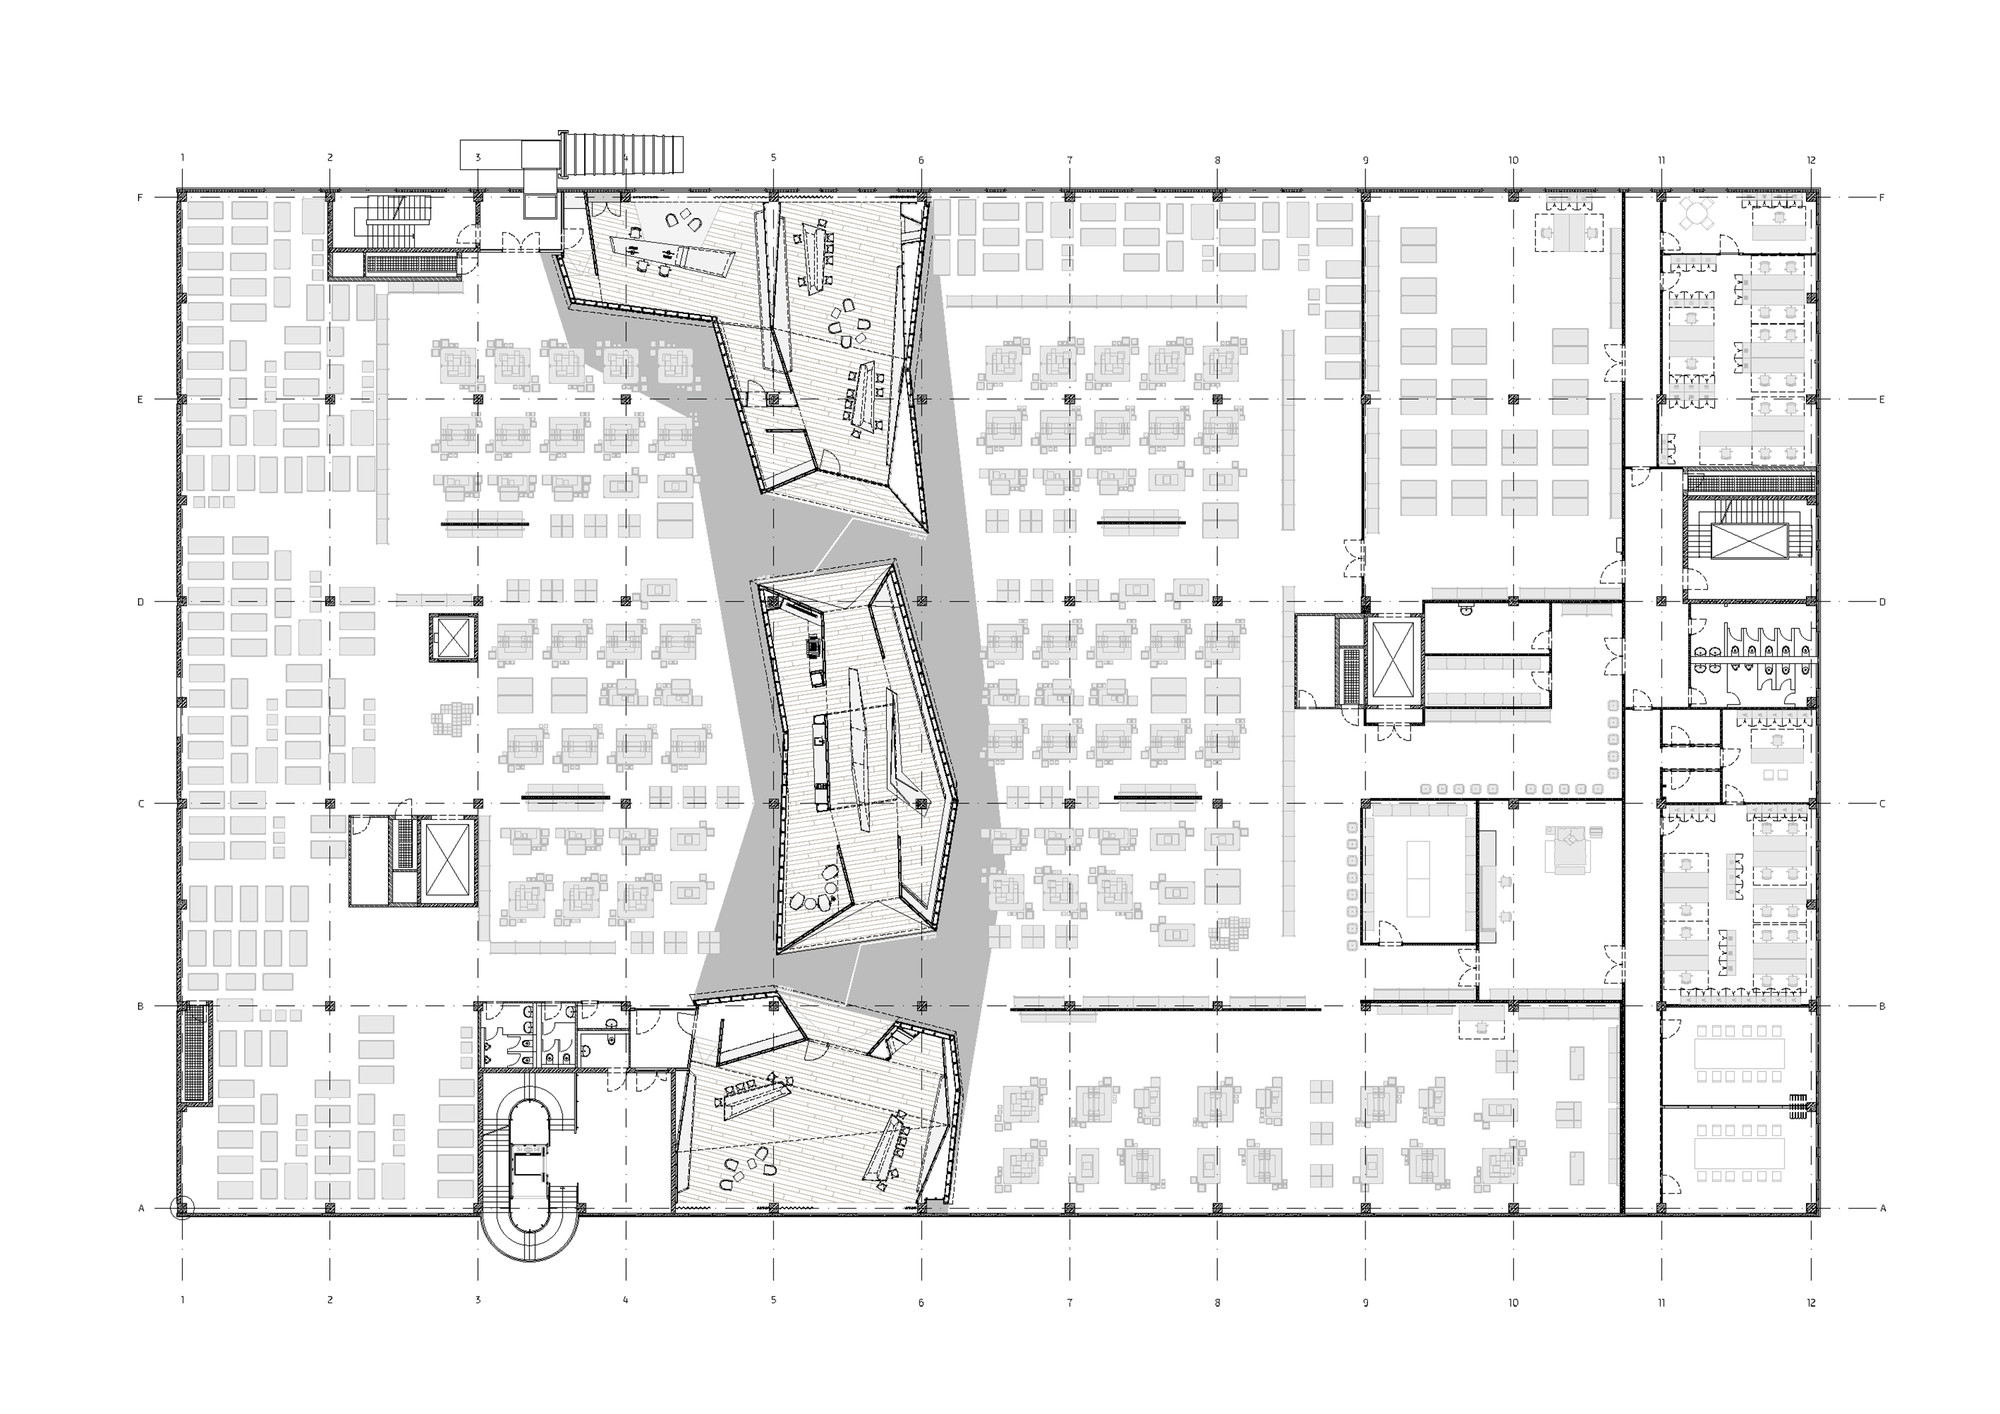 Kreativlabs sch ne r ume architektur innenarchitektur for Architektur layouts